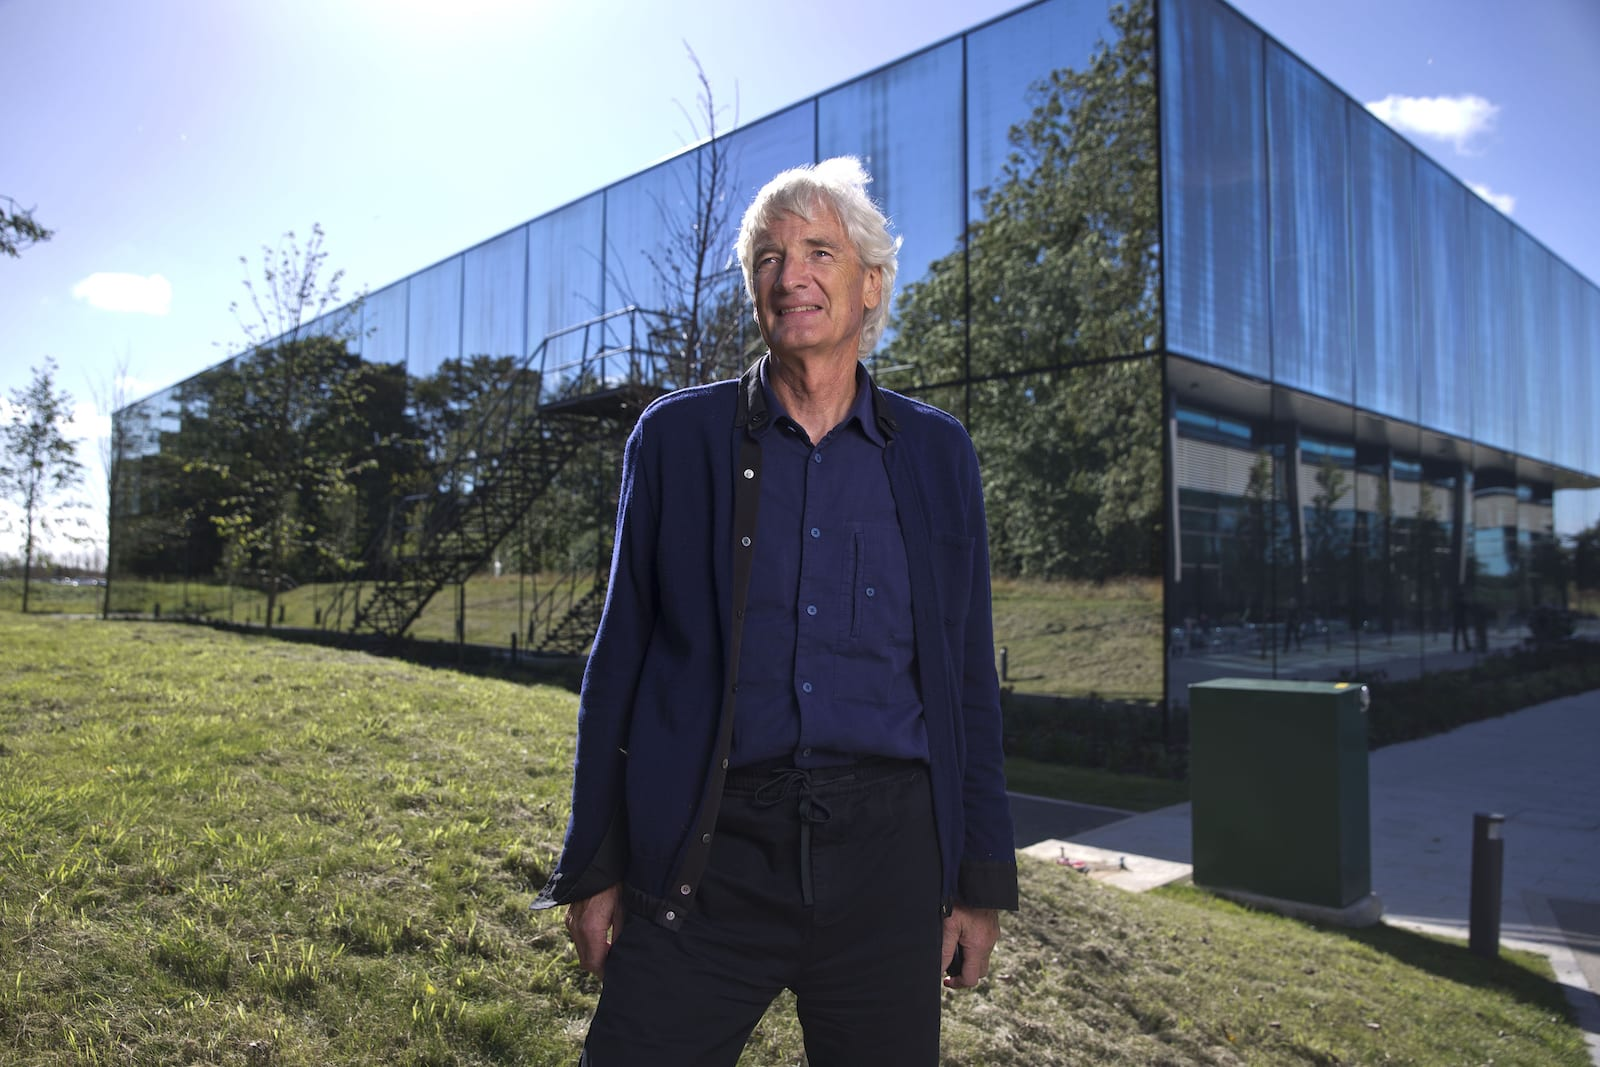 Sir James Dyson photographed at the Dyson HQ in Malmesbury, Wiltshire.Malmesbury 8 September 2016Licensed to Dyson Ltd for Internal and Press use including sharing with external publications for their print and online editions .